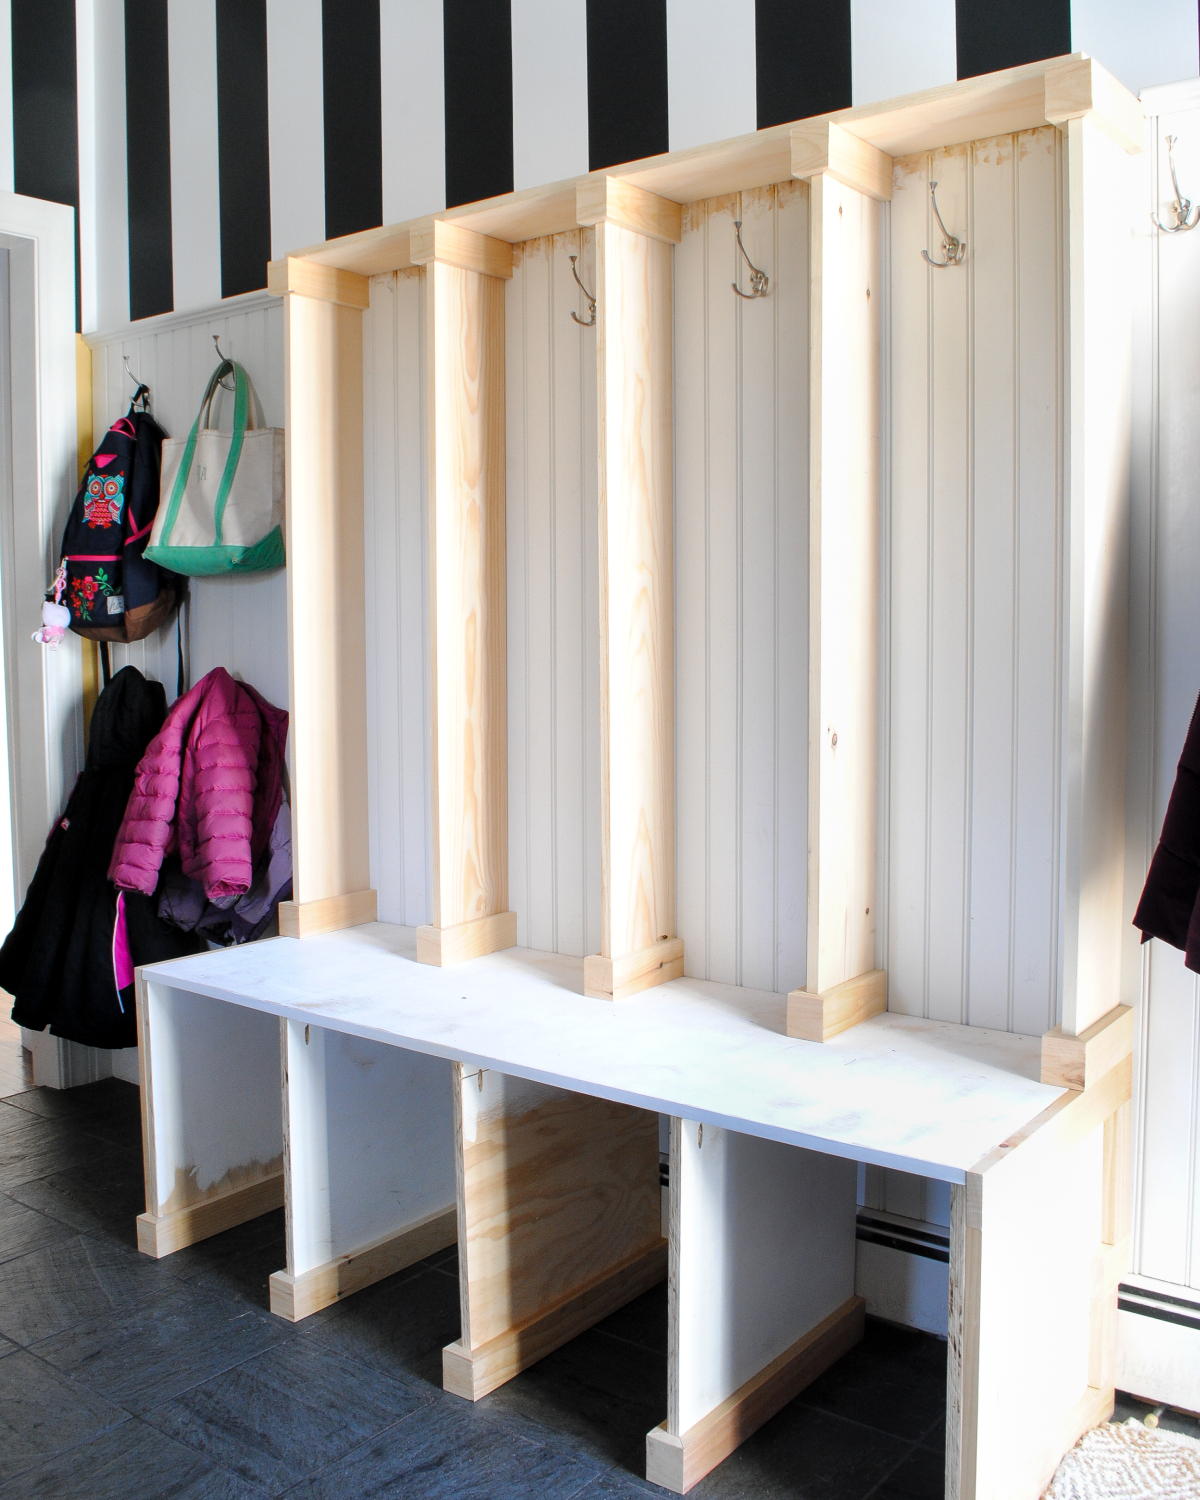 DIY mudroom lockers / cubbies made with plywood and pine boards